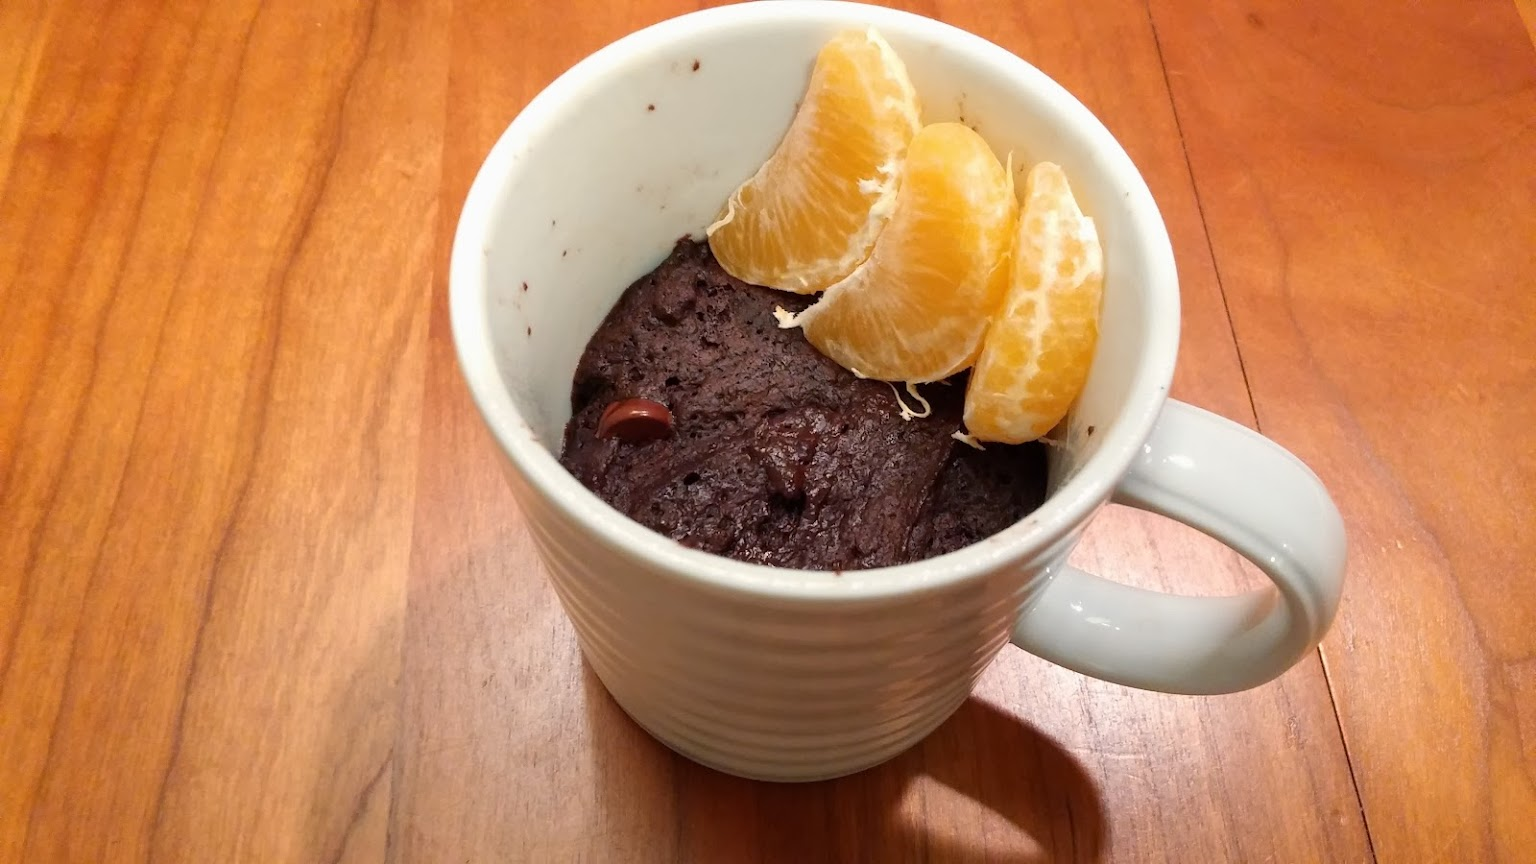 Chocolate mug cake with clementine orange pieces